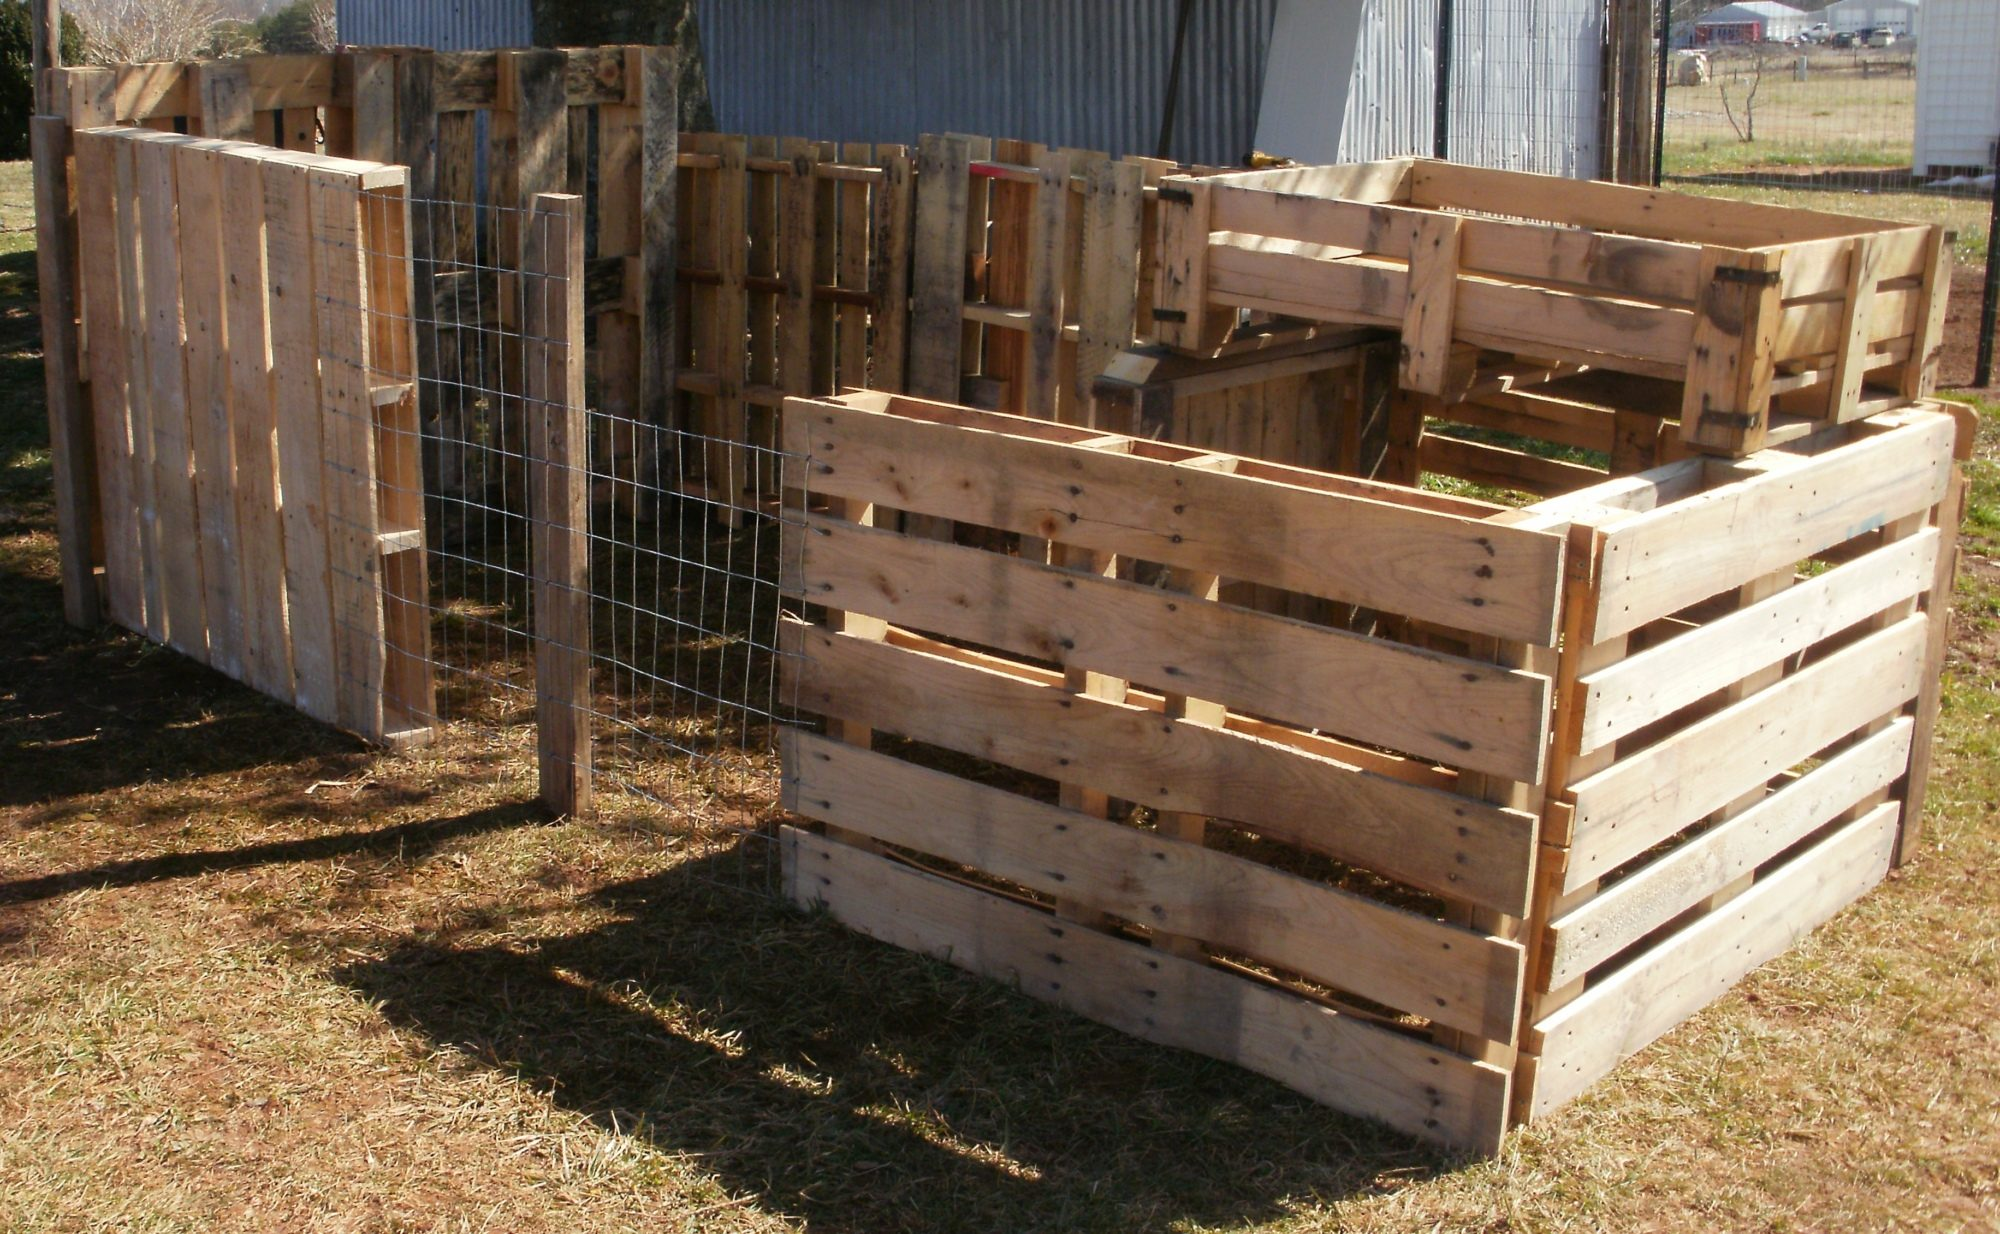 Pallet chicken coop backyard chickens community for How to build a chicken coop from wooden pallets